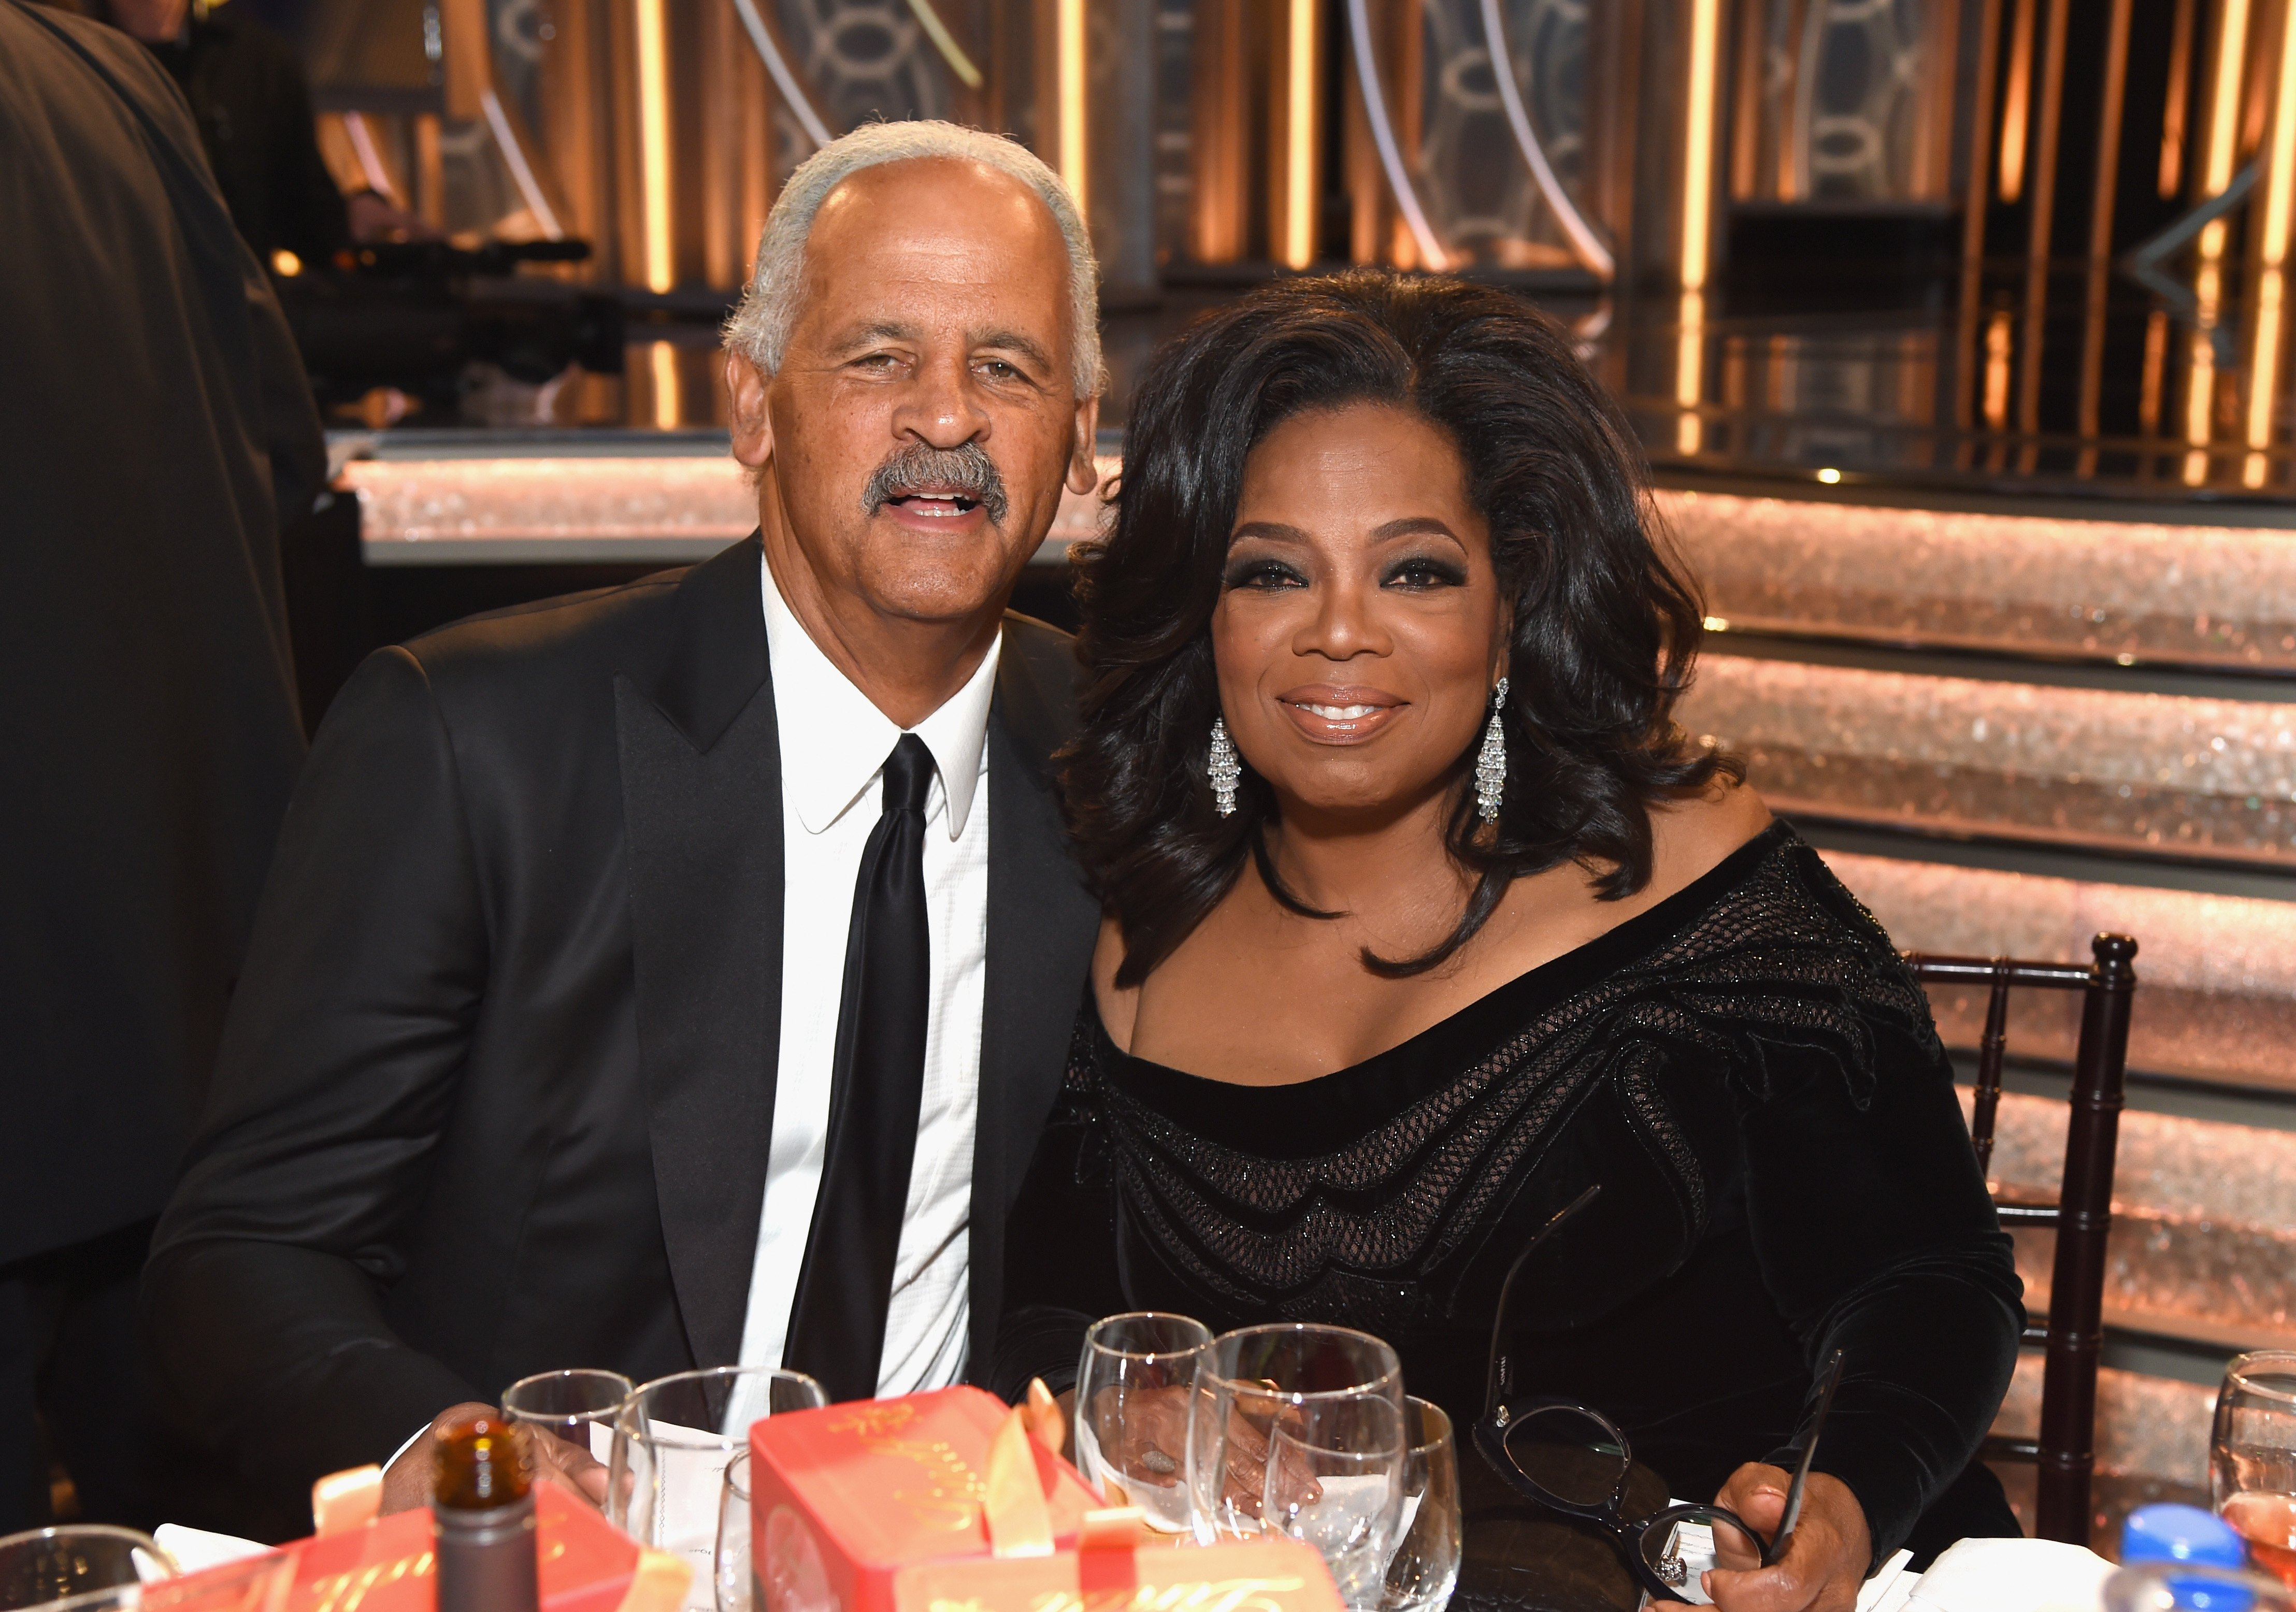 Stedman Graham and Oprah Winfrey at The 75th Annual Golden Globe Awards on January 7, 2018, in Beverly Hills, California l Source: Getty Images